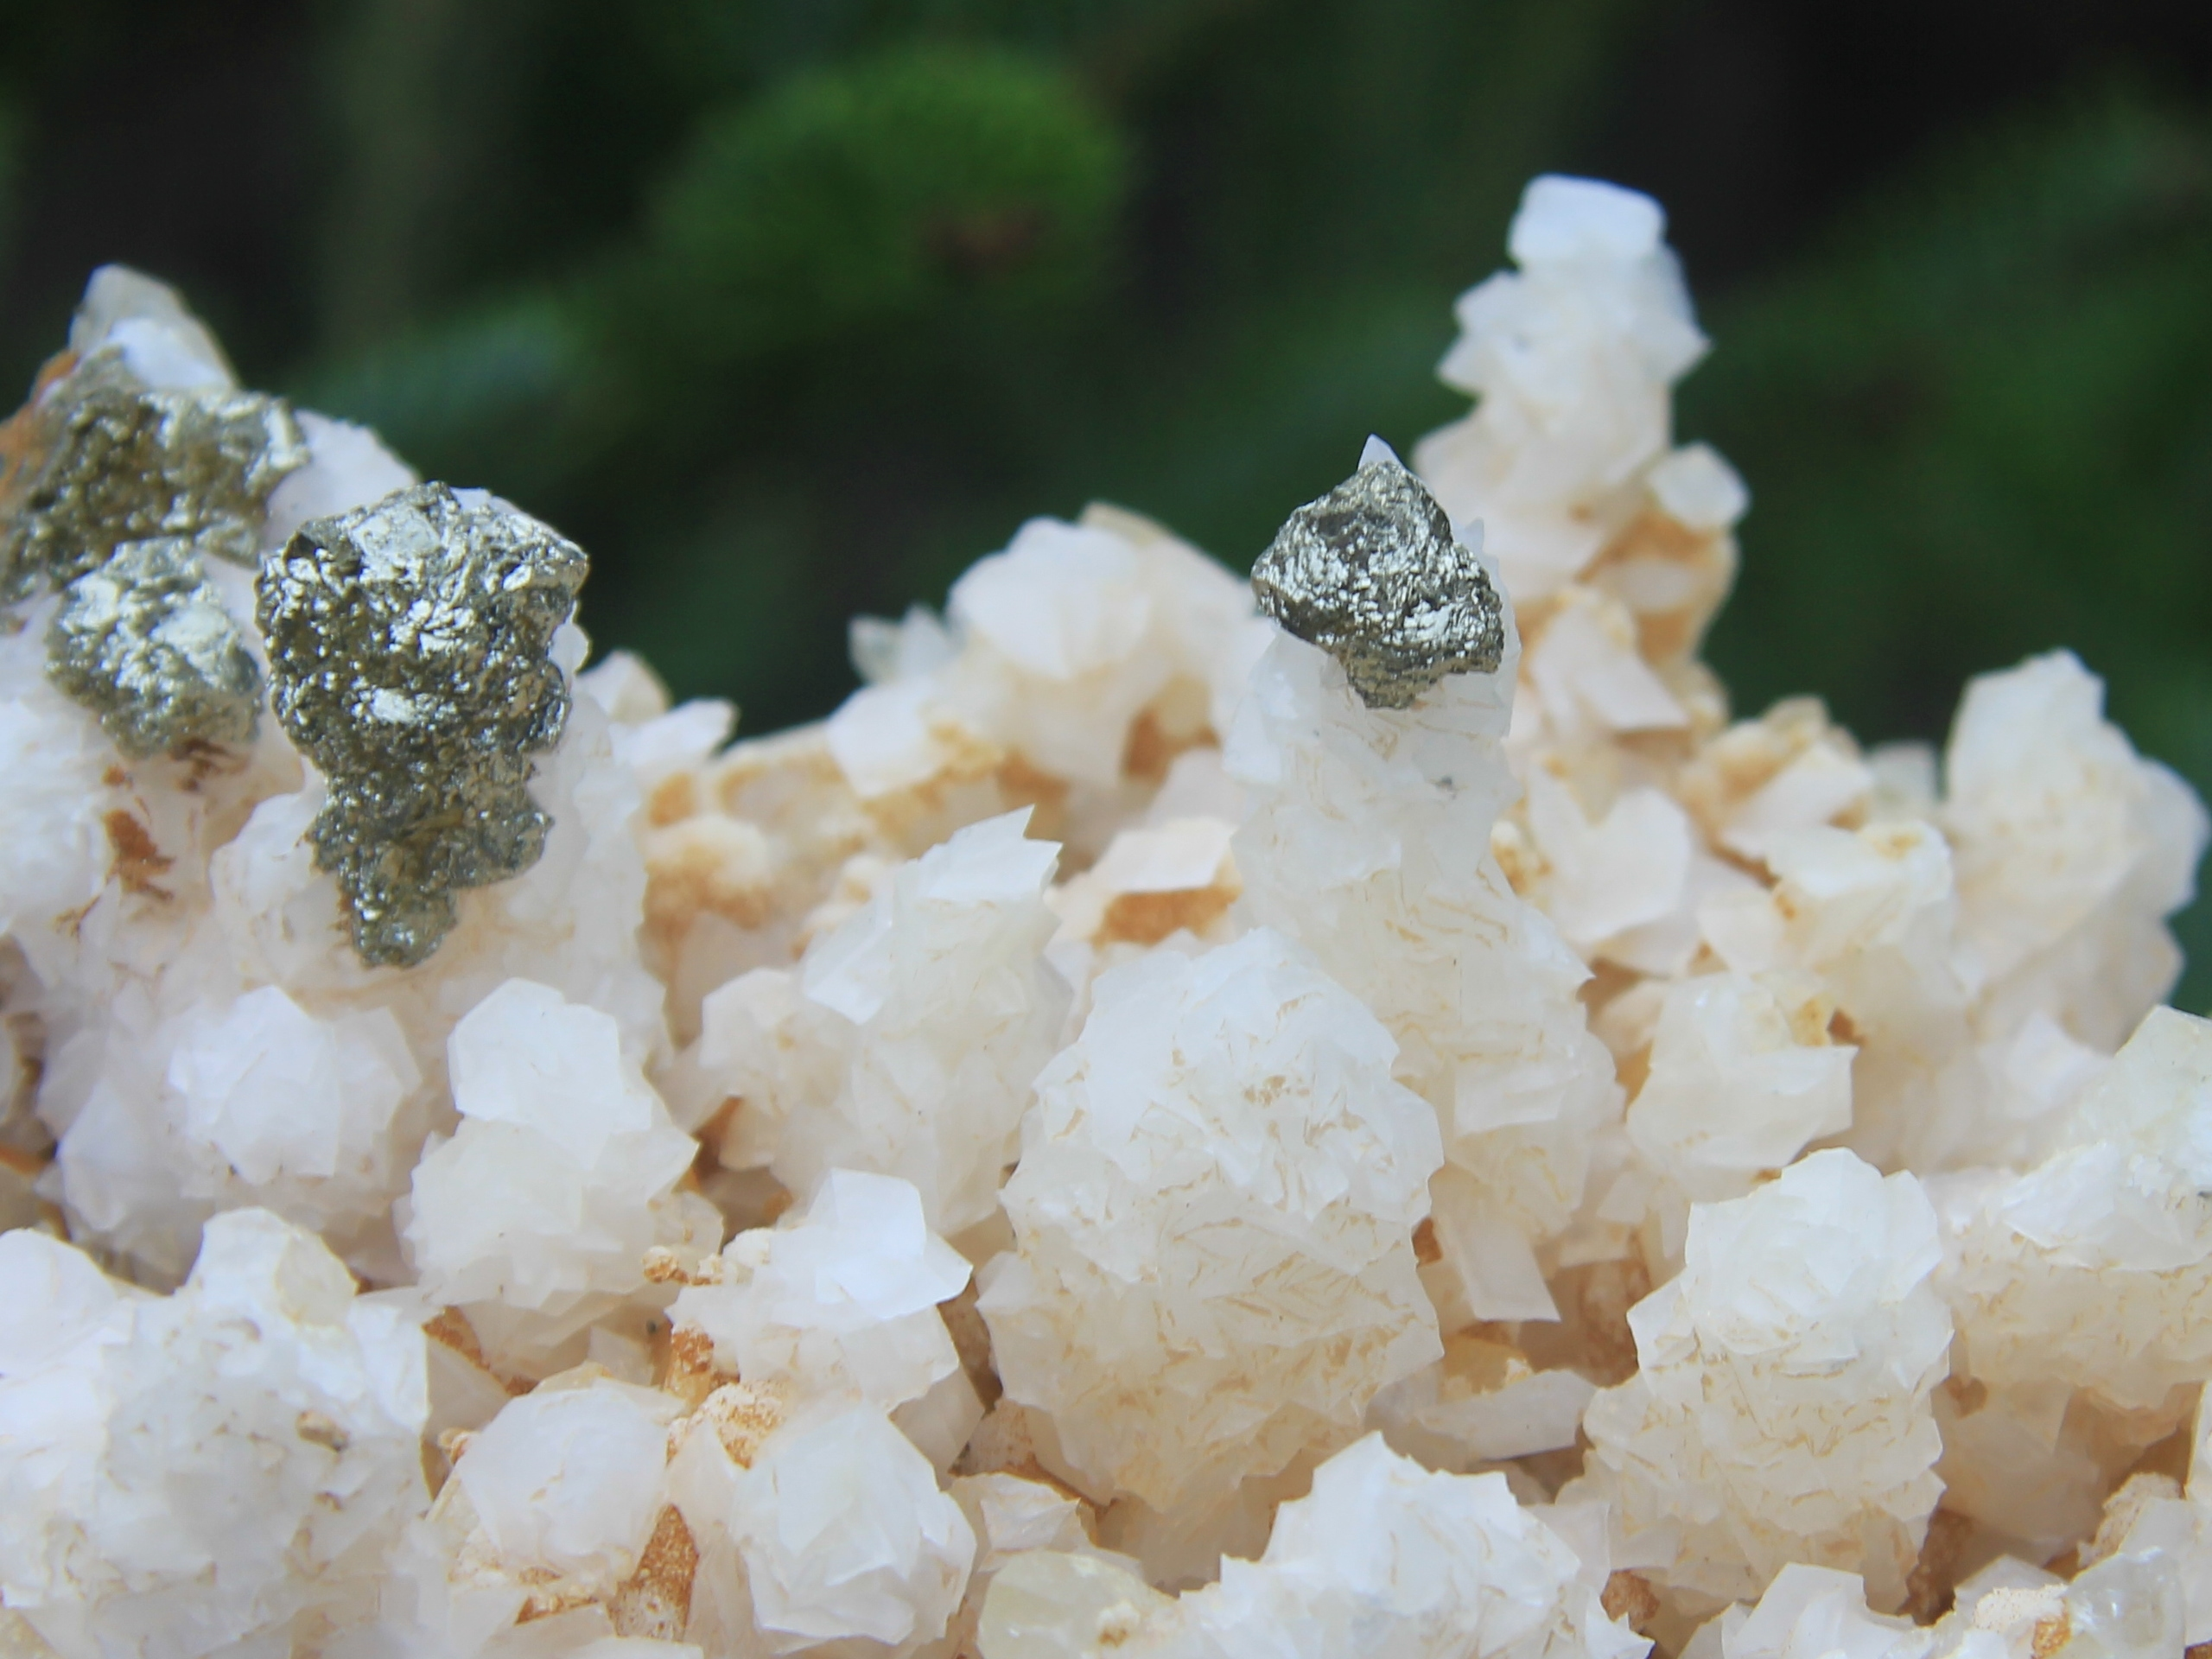 Calcite with pyrite on top